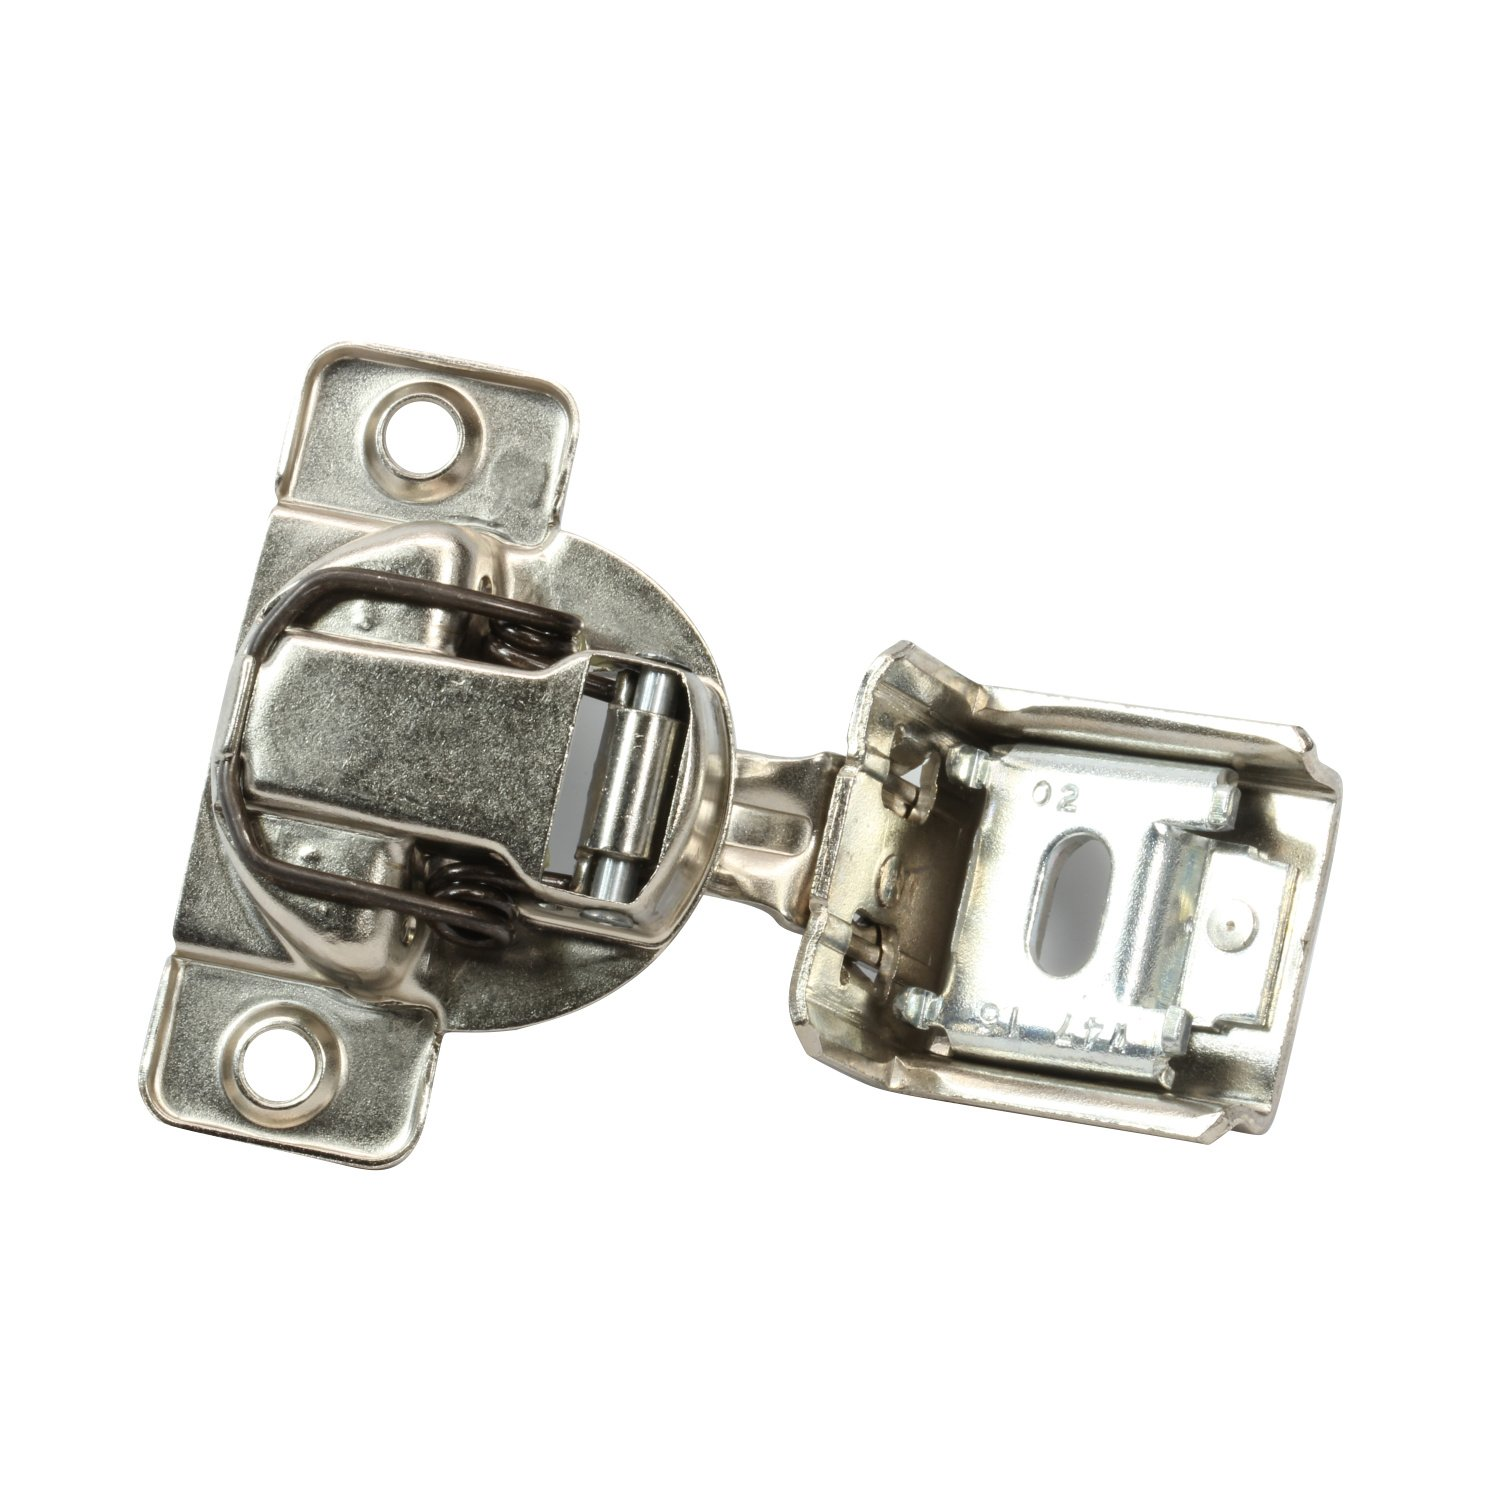 25 Pack Rok Hardware Grass TEC 864 108 Degree 1-1/4'' Overlay 3 Level Soft Close Screw On Compact Cabinet Hinge 04547A-15 3-Way Adjustment 45mm Boring Pattern